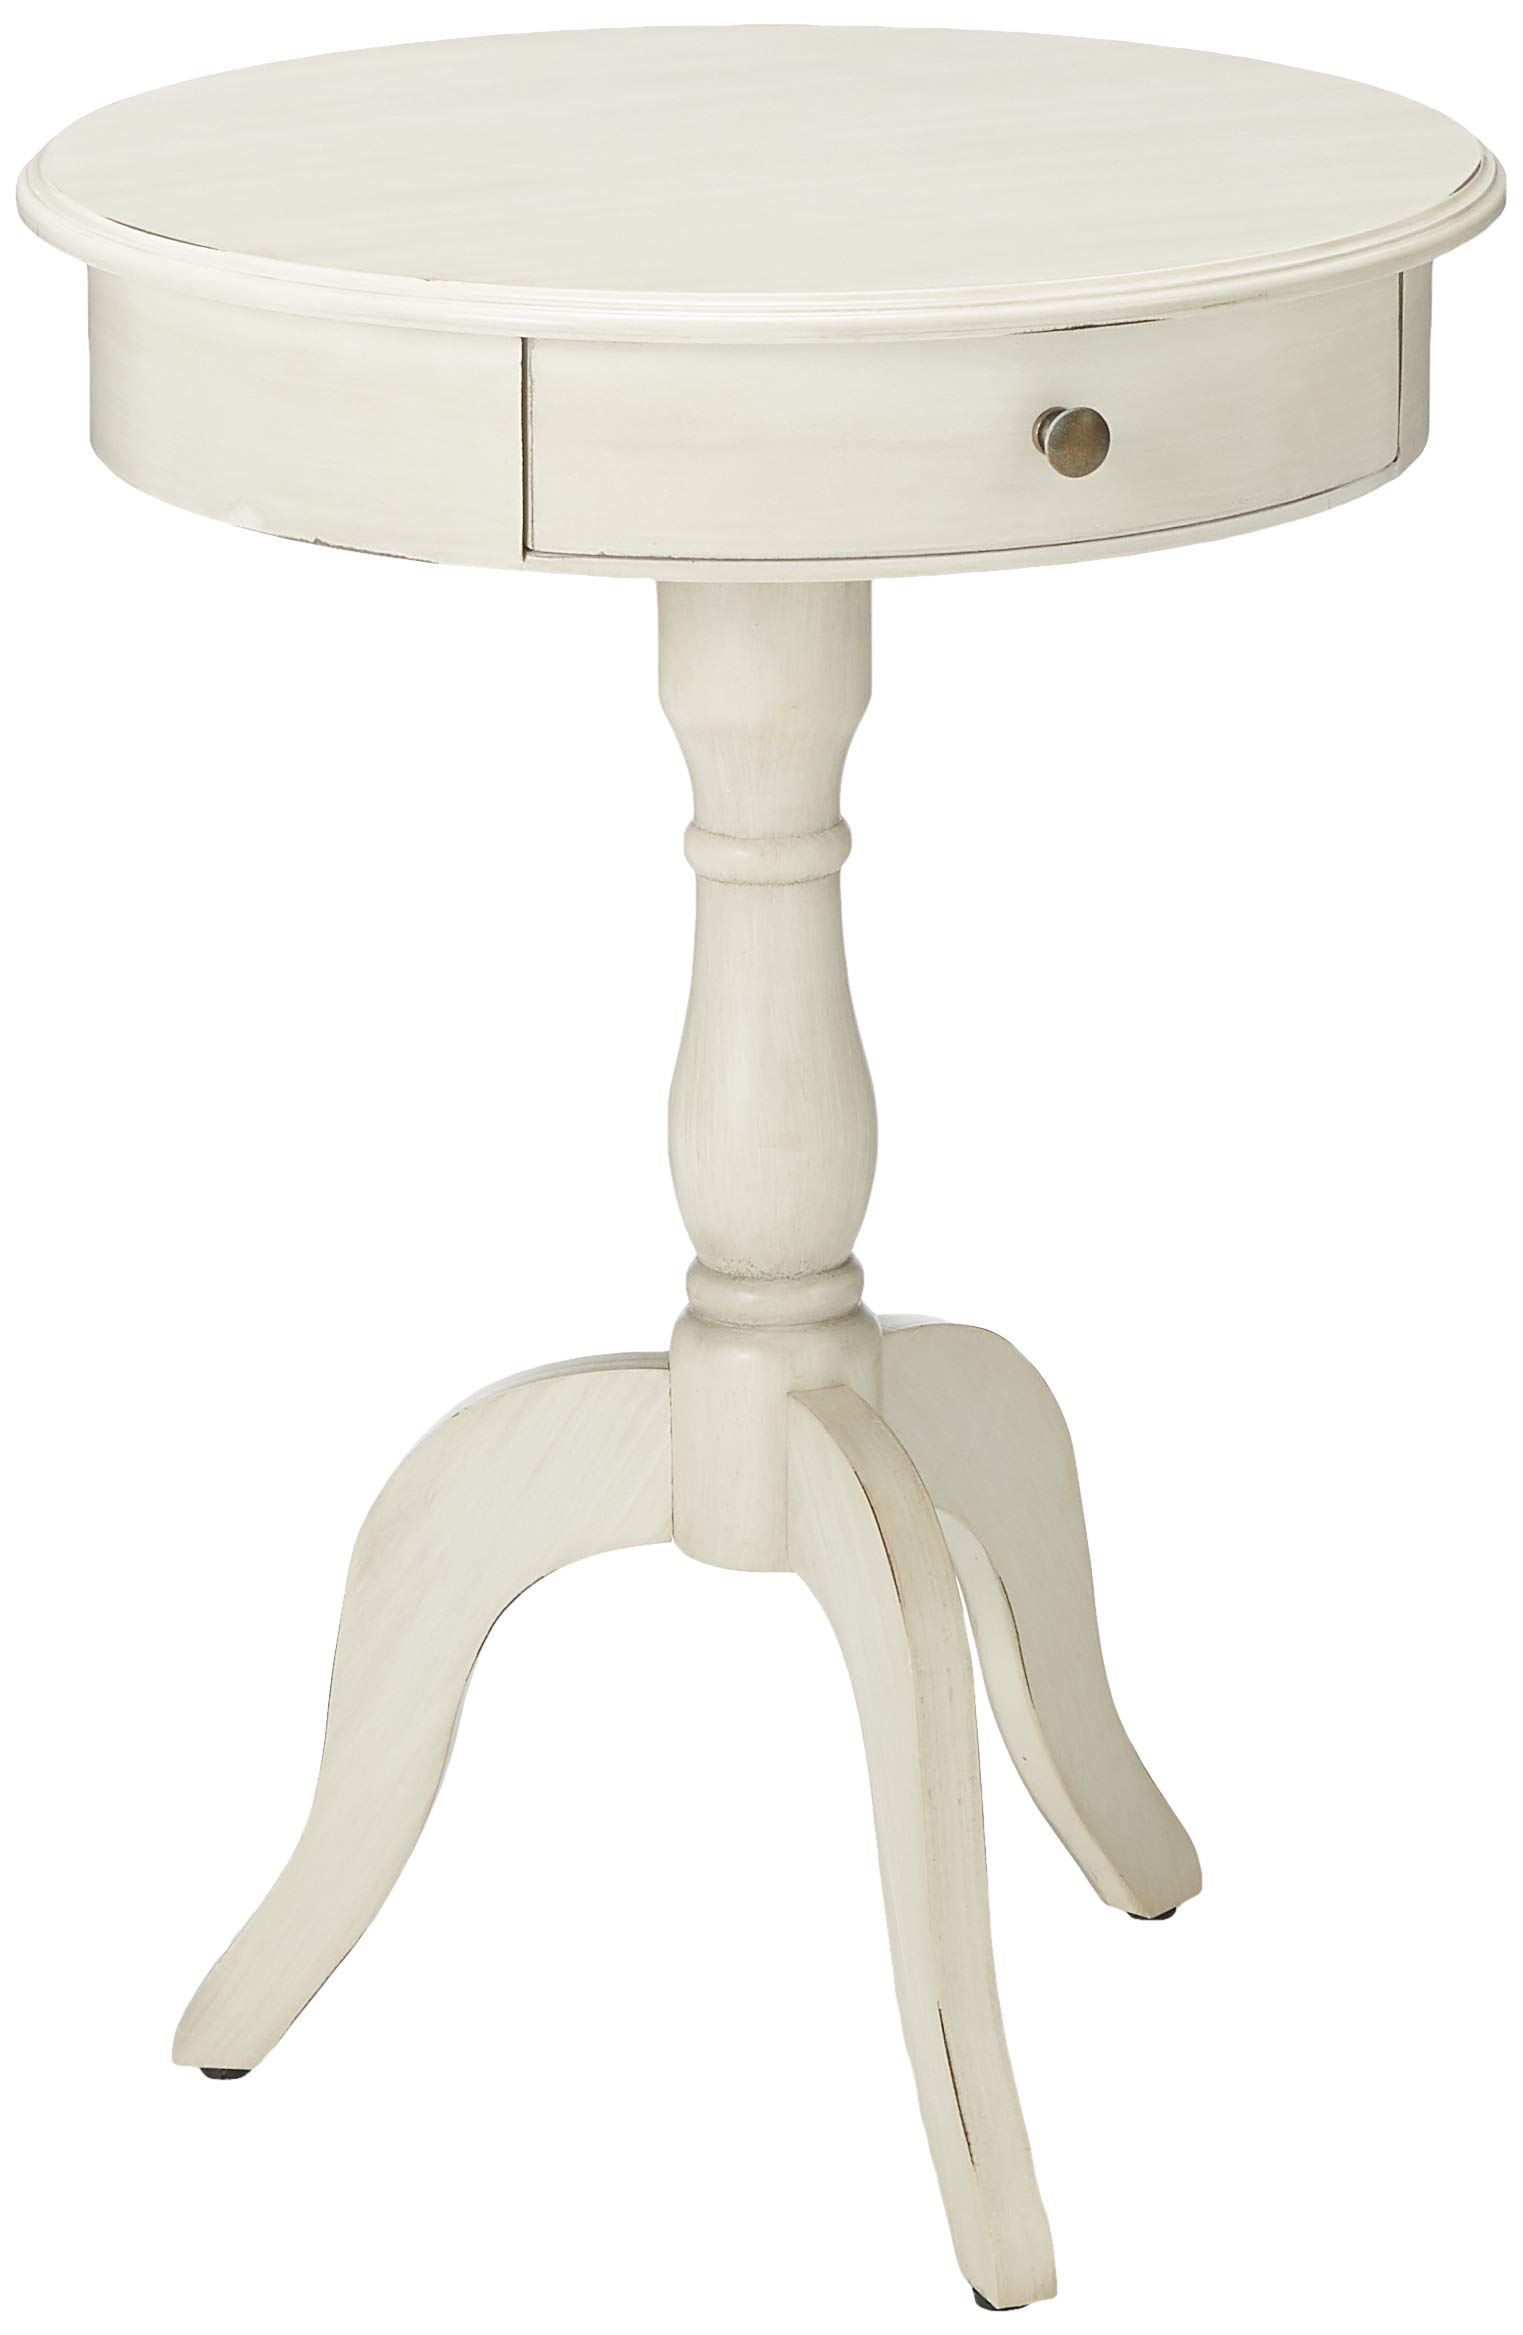 Décor Therapy FR1464 Pedestal Table with Drawer, Antique White by Decor Therapy